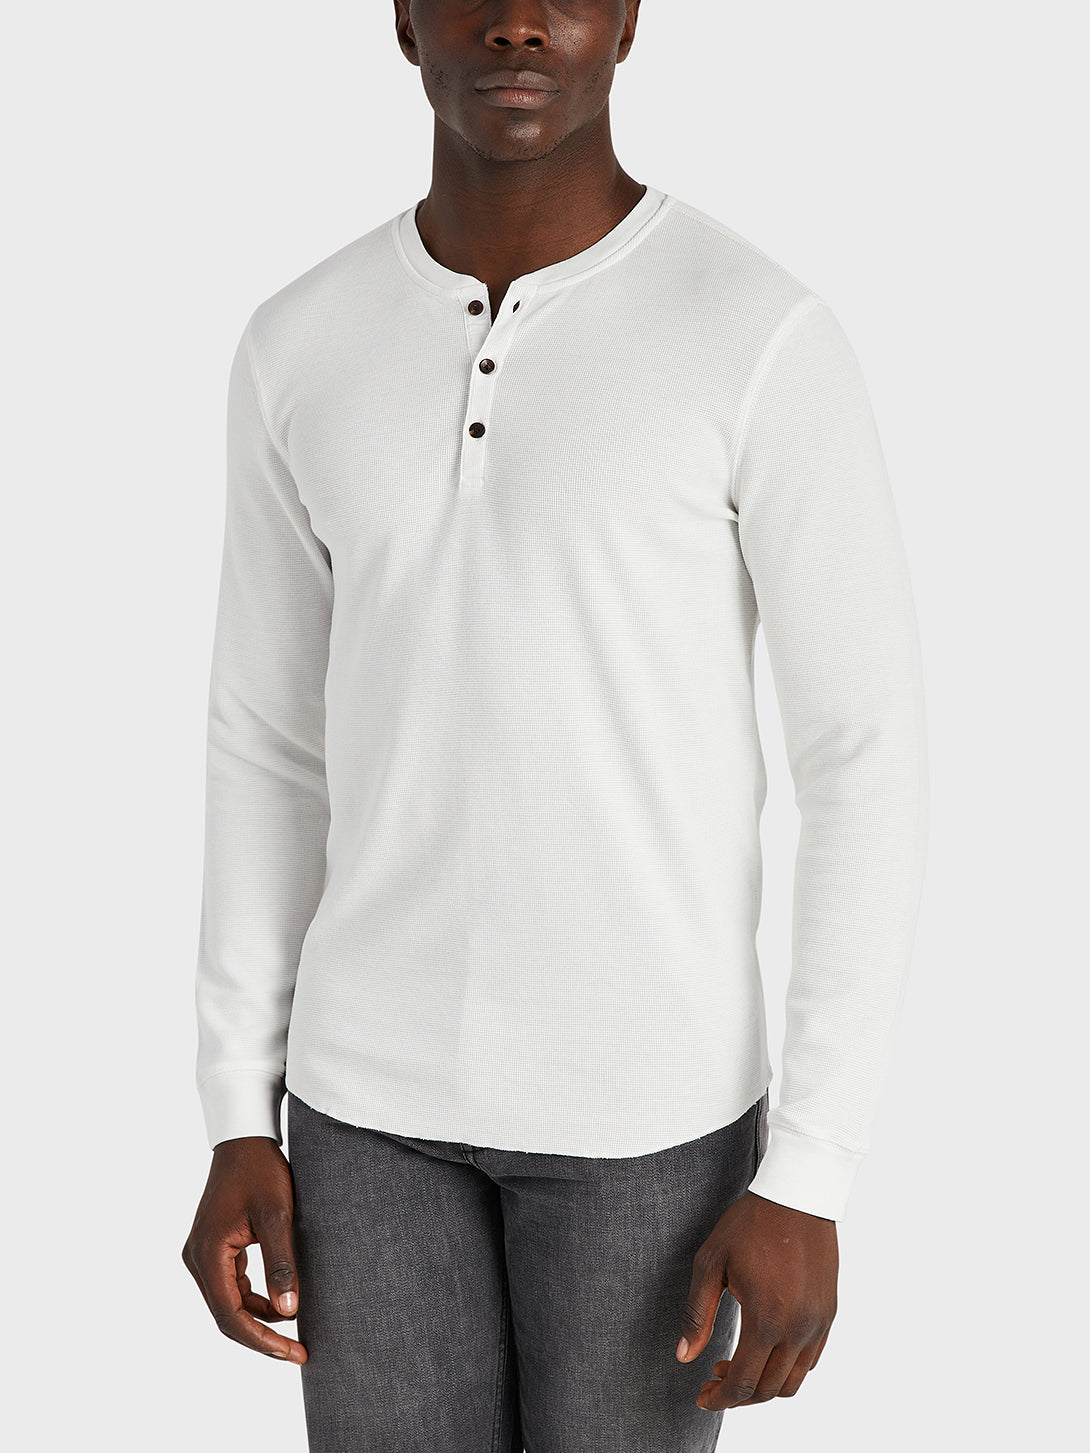 ONS Clothing Men's COURT WAFFLE HENLEY Pre-shrunk Cotton in WHITE